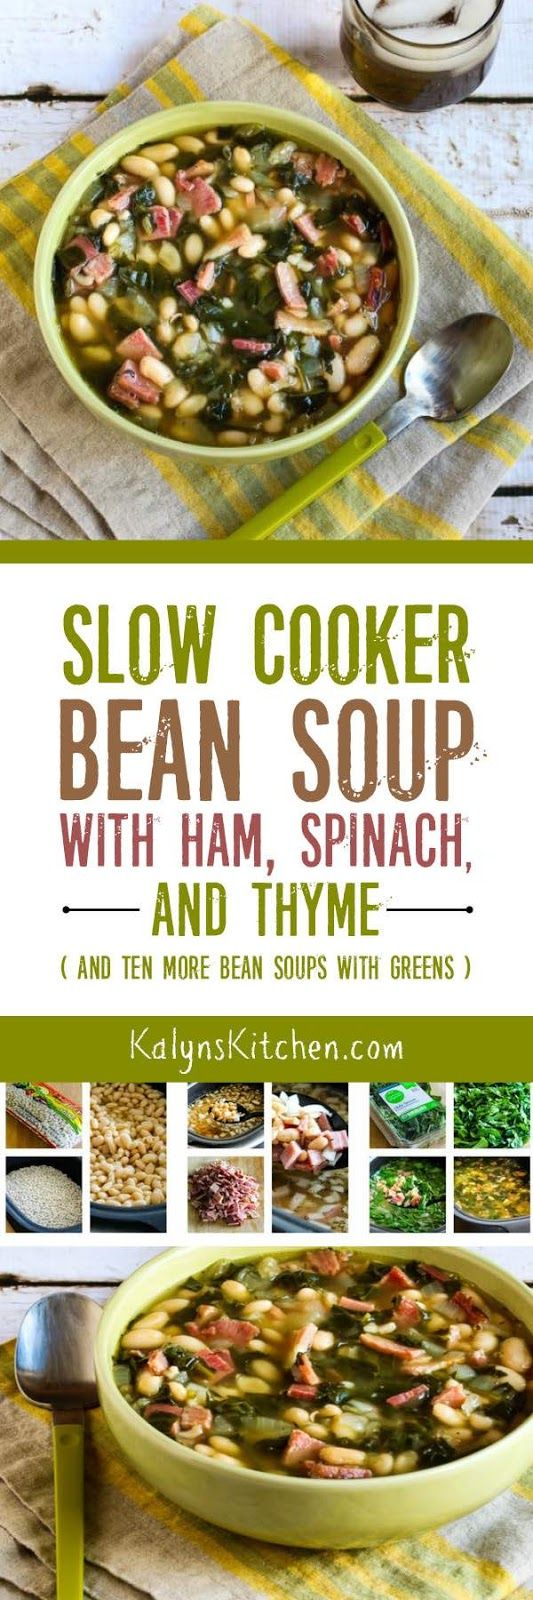 Slow Cooker Bean Soup with Ham, Spinach, and Thyme is the ultimate in healthy cold-weather comfort food, and this tasty low-glycemic soup is also gluten-free, dairy-free, and South Beach Diet Phase One.  [found on KalynsKitchen.com]